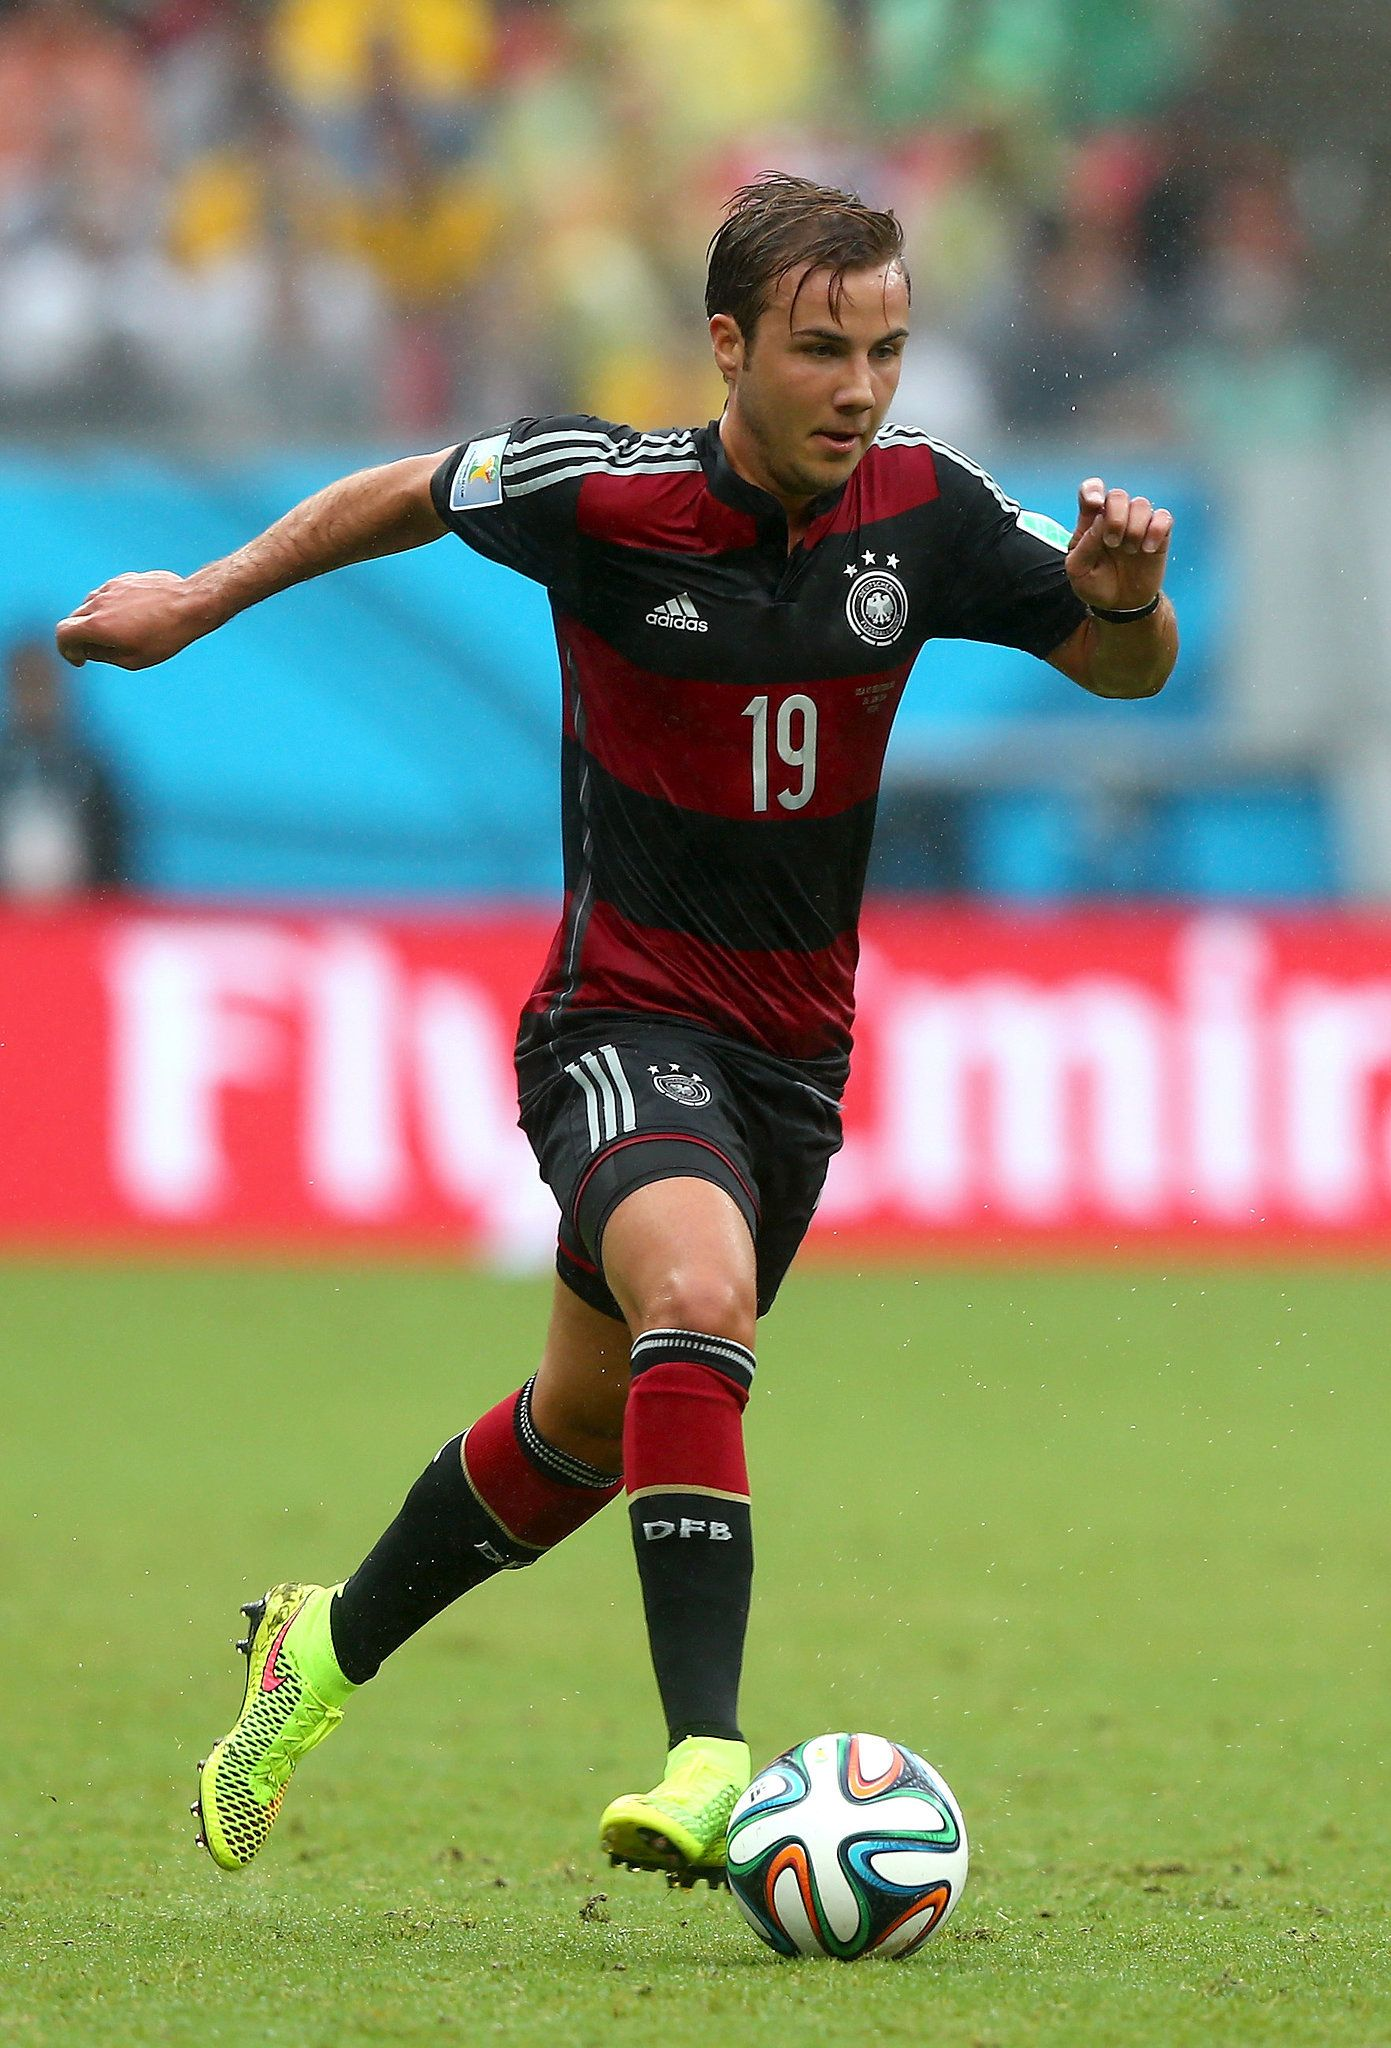 Germany Mario Gotze Soccer Fifa Germany Football German Football Players